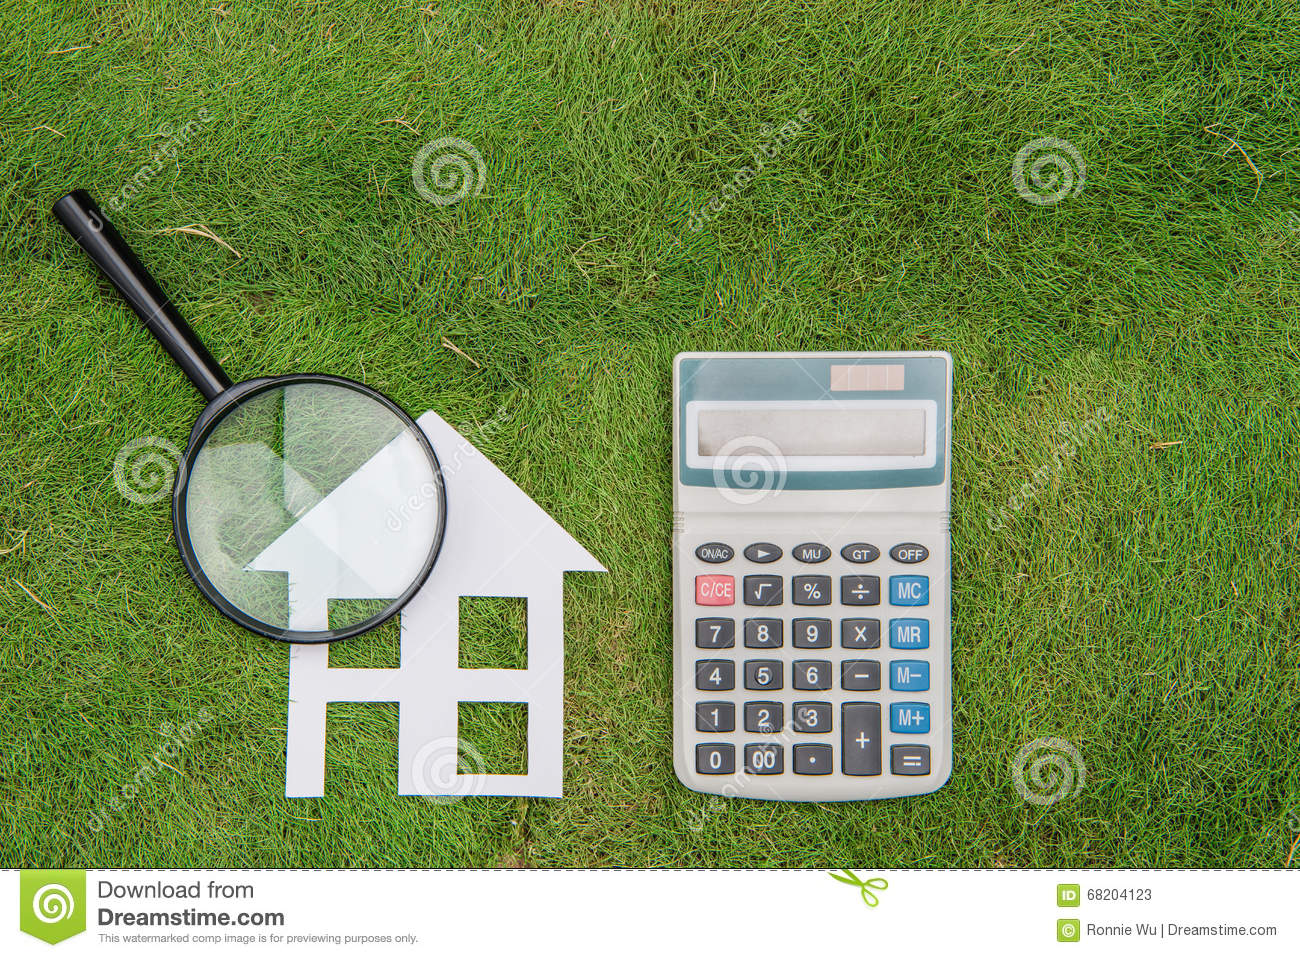 Buy green building house mortgage calculations calculator for Build a home calculator